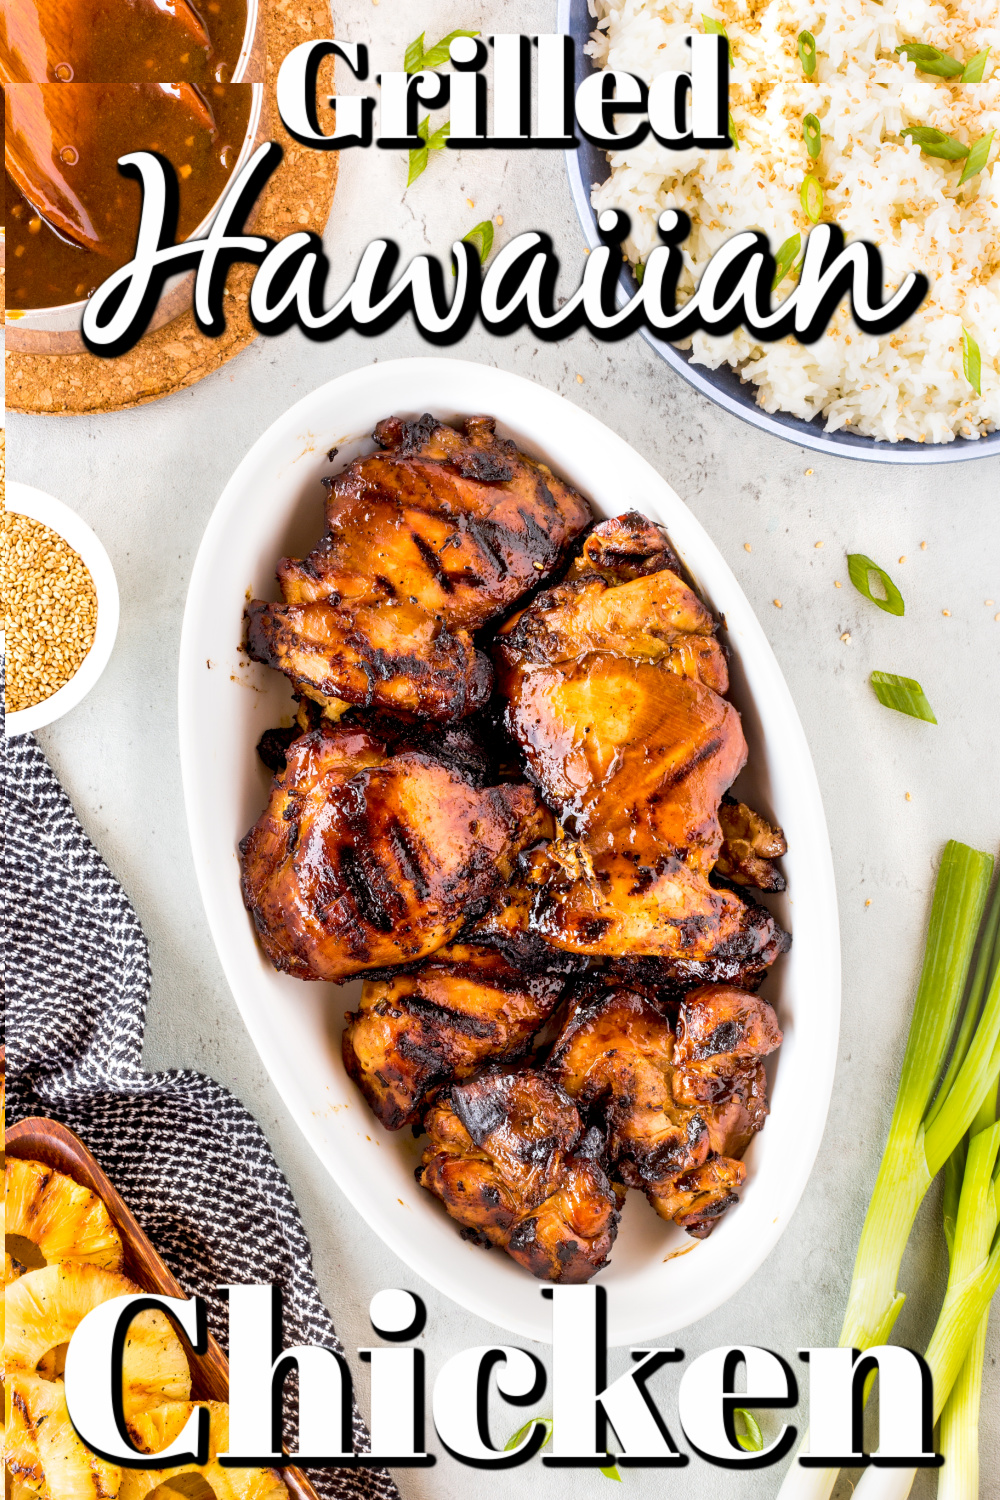 Imagine palm trees gently swaying in the cool ocean breeze. That's the feeling you will get when you serve this delicious grilled Hawaiian chicken!